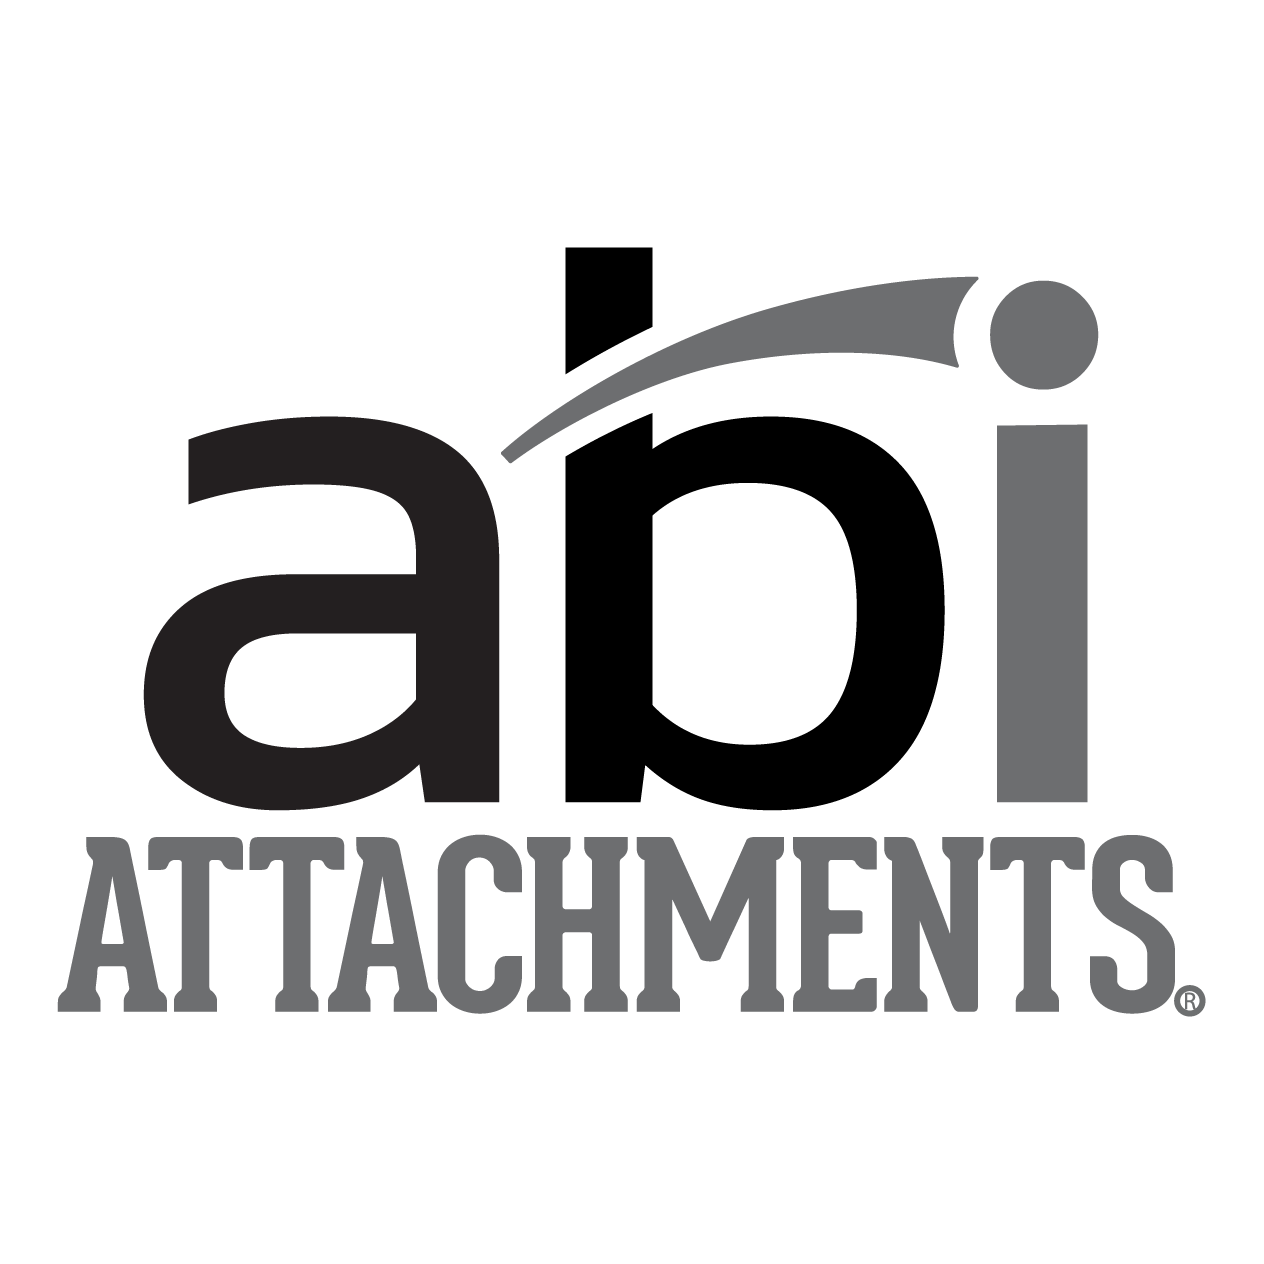 ABI Attachments Logo